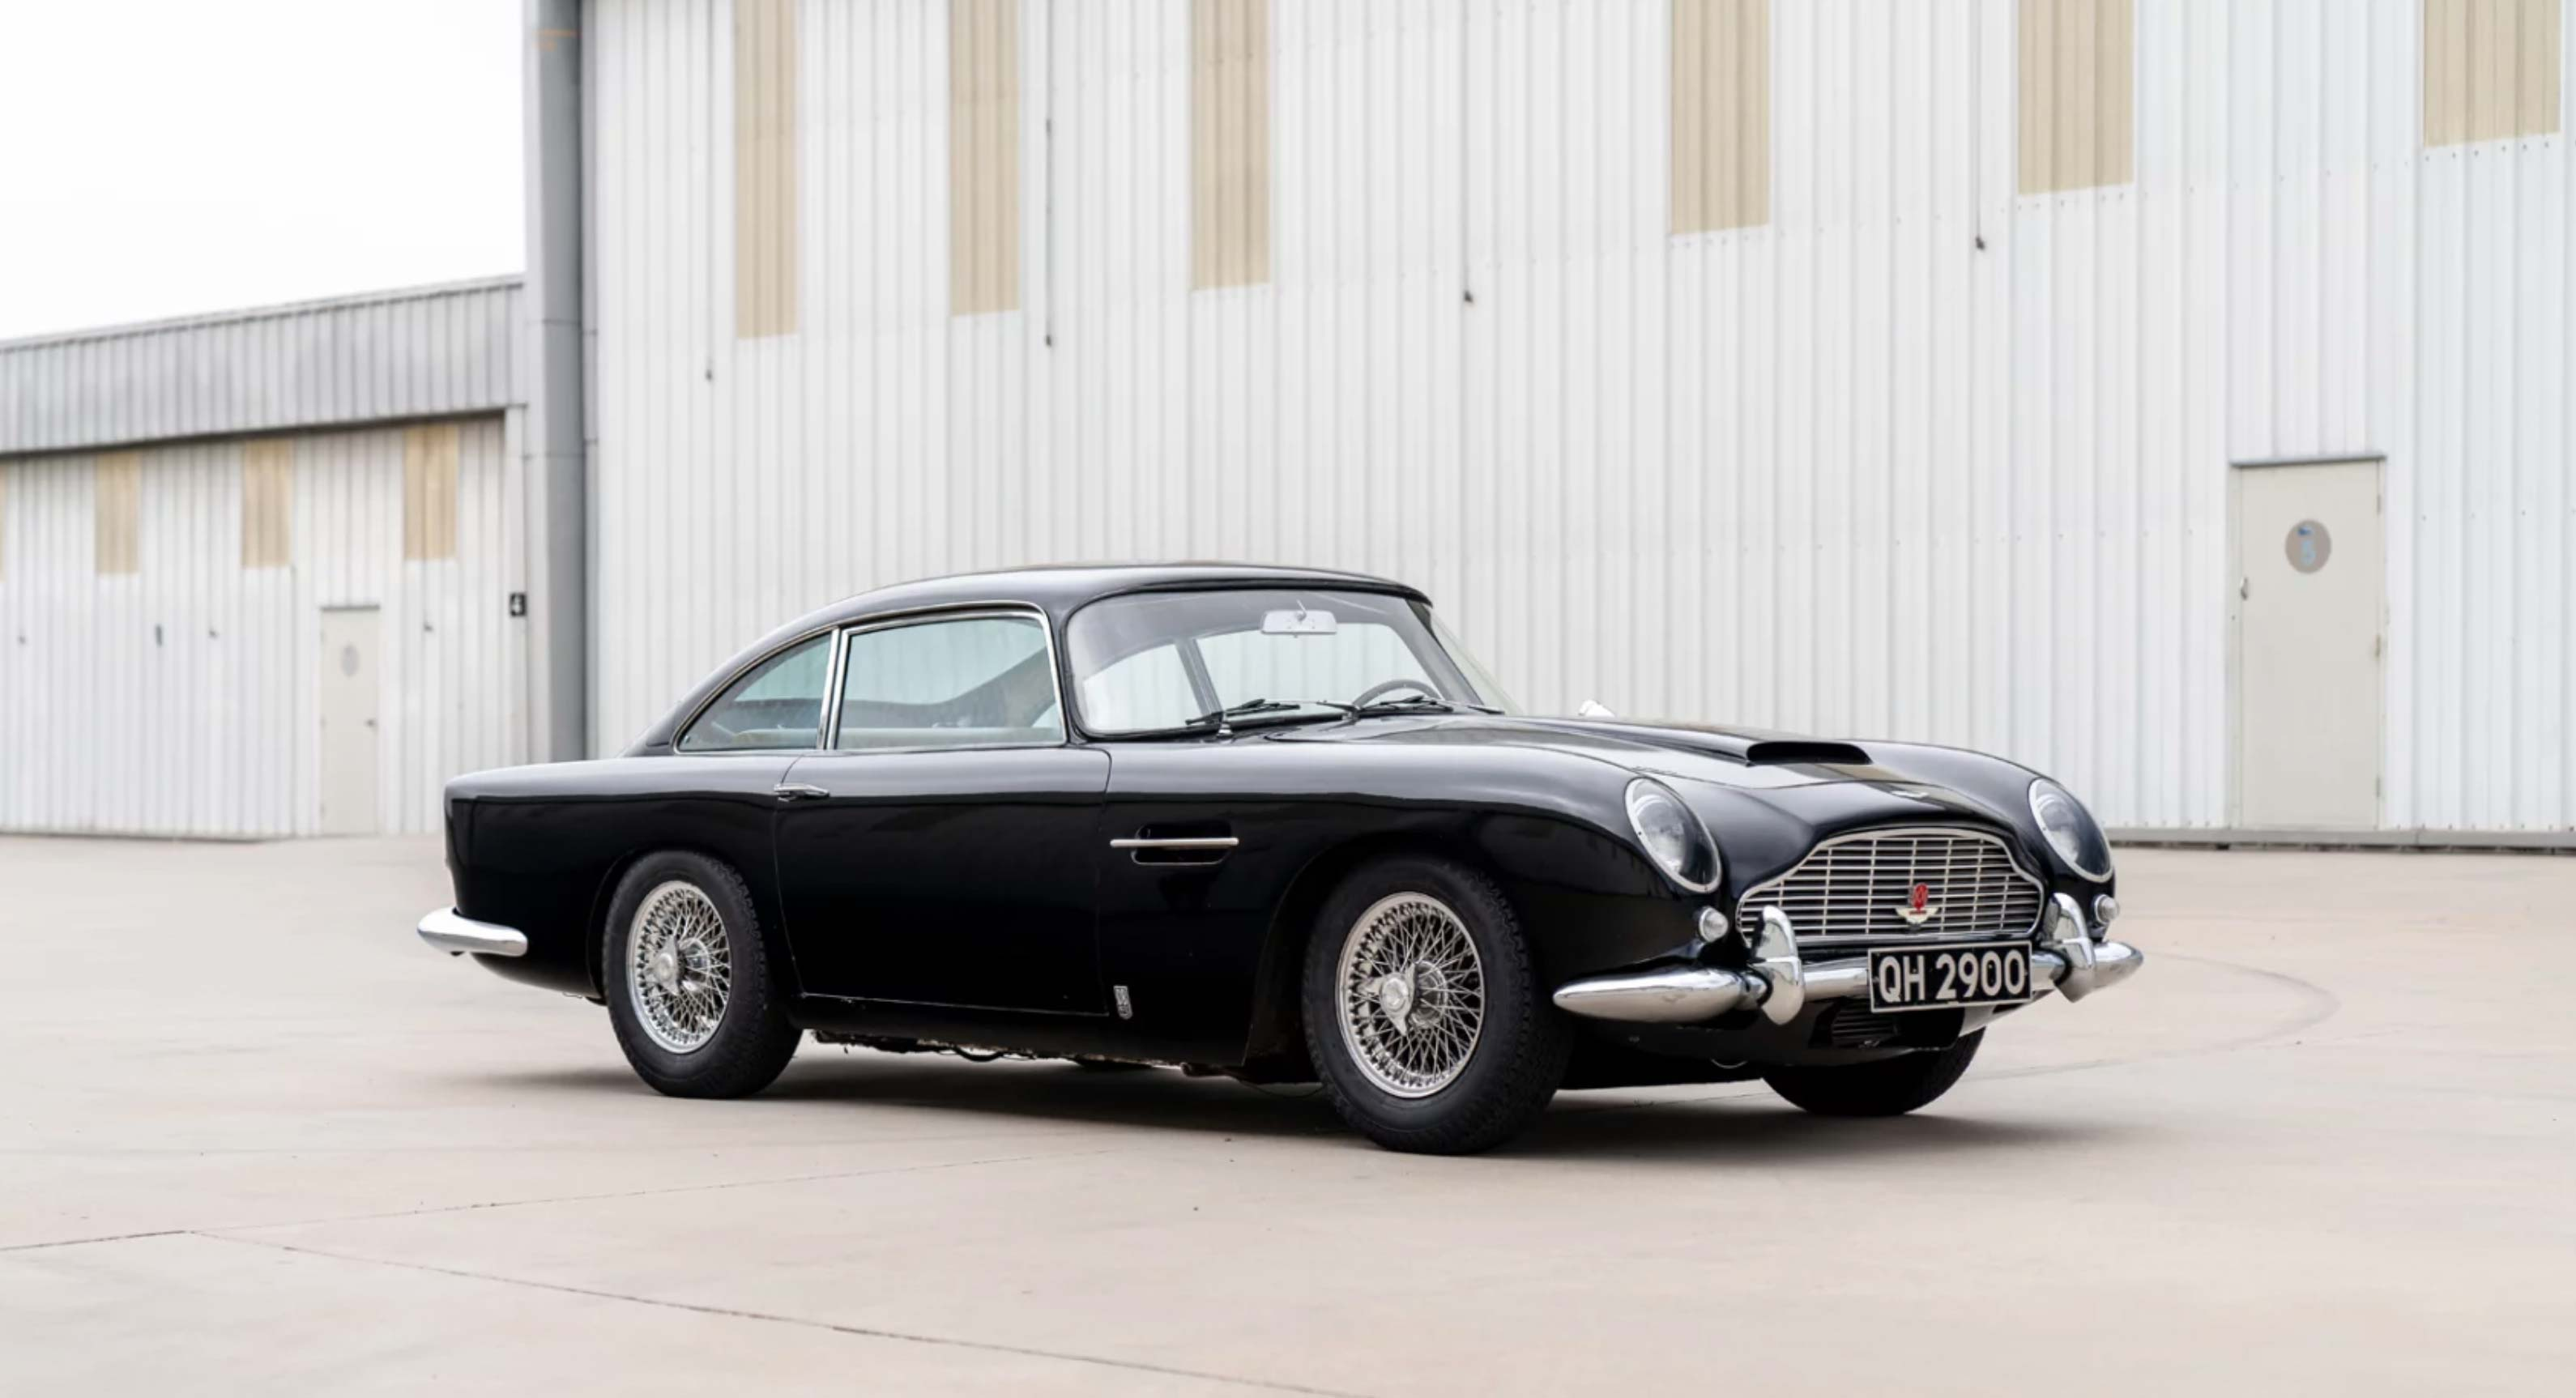 Classic Car Find of the Week: 1965 Aston Martin DB5